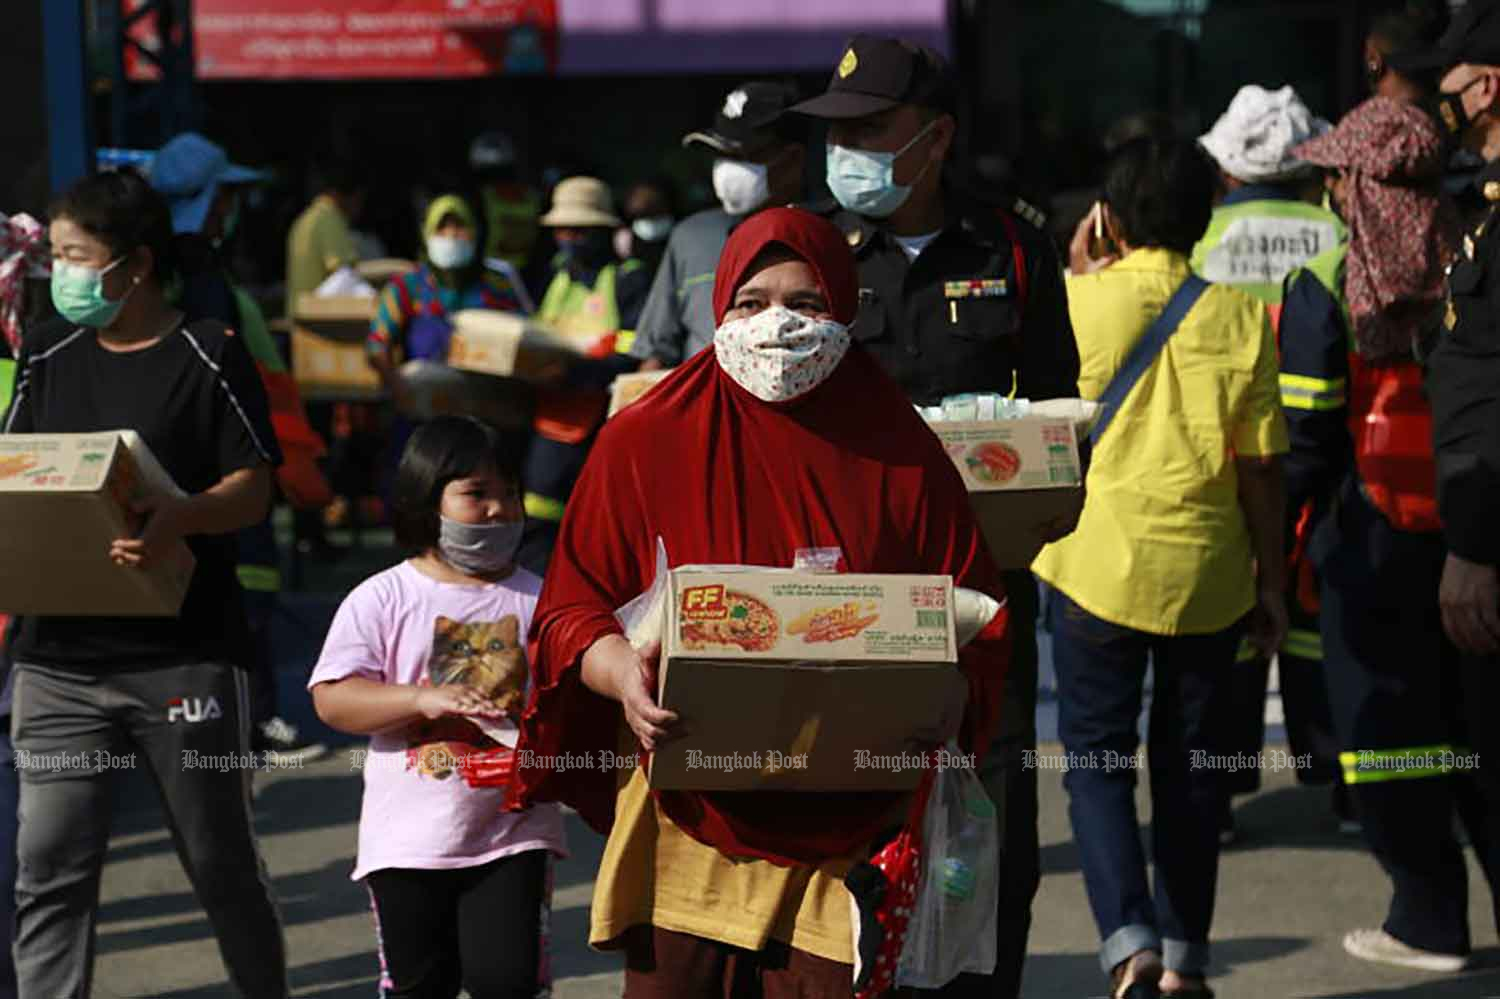 People receive food handouts in the wake of the Covid-19 pandemic at Wang Som community in Bang Kapi district, Bangkok, on Wednesday when the country confirmed 72 new Covid-19 cases. (Photo by Arnun Chonmahatrakool)